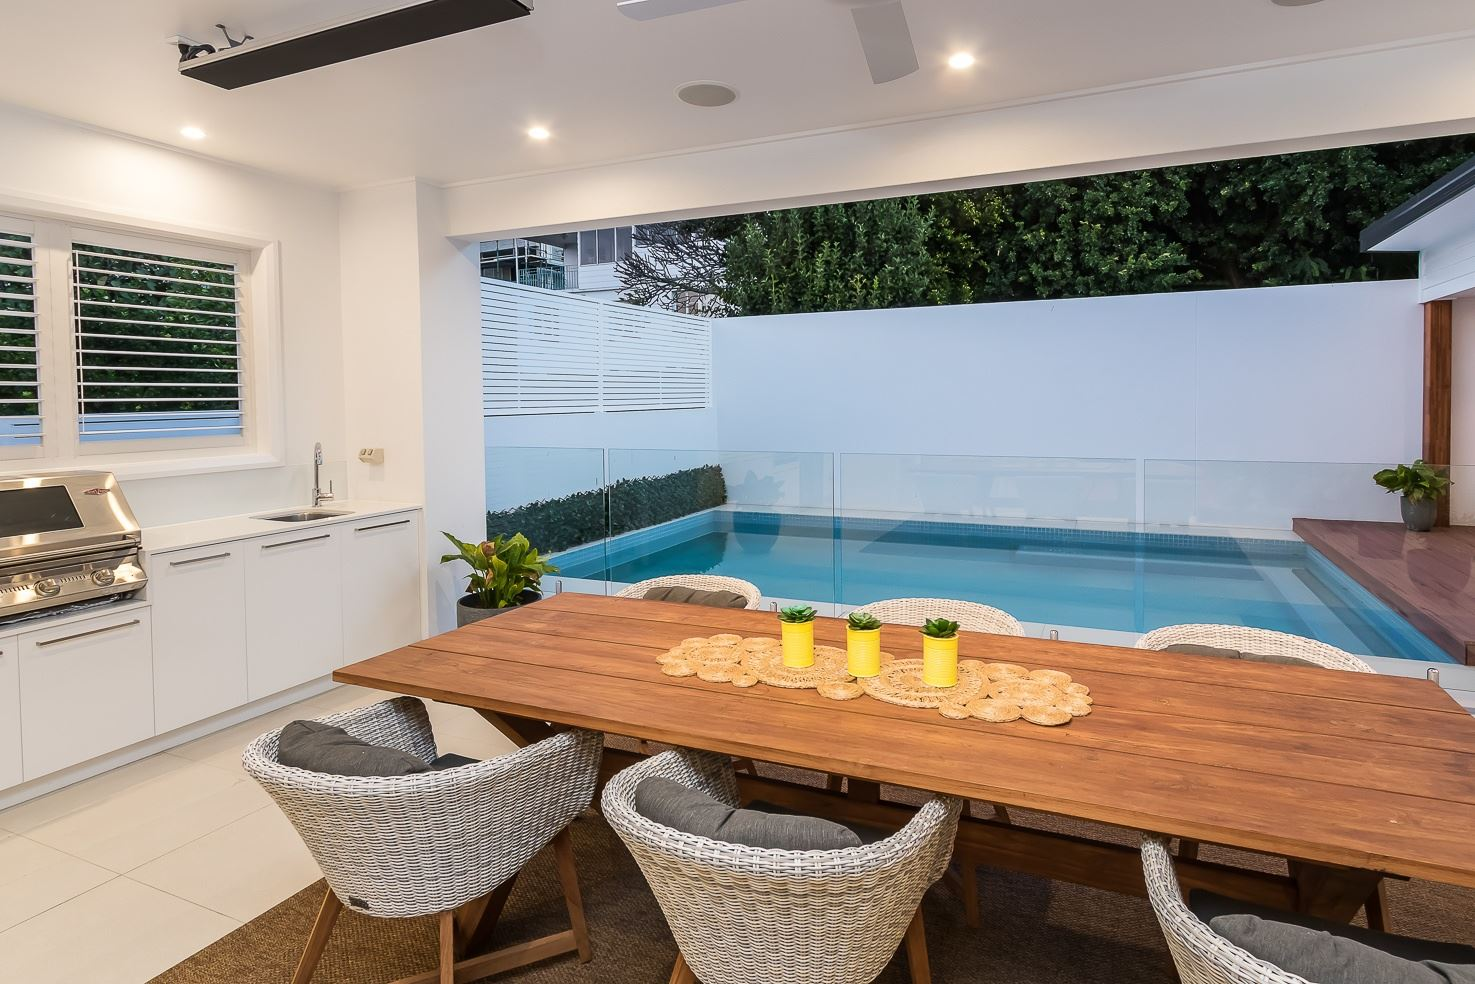 Brisbane Manly contemporary home by evermore overlooking the pool from the entertaining area